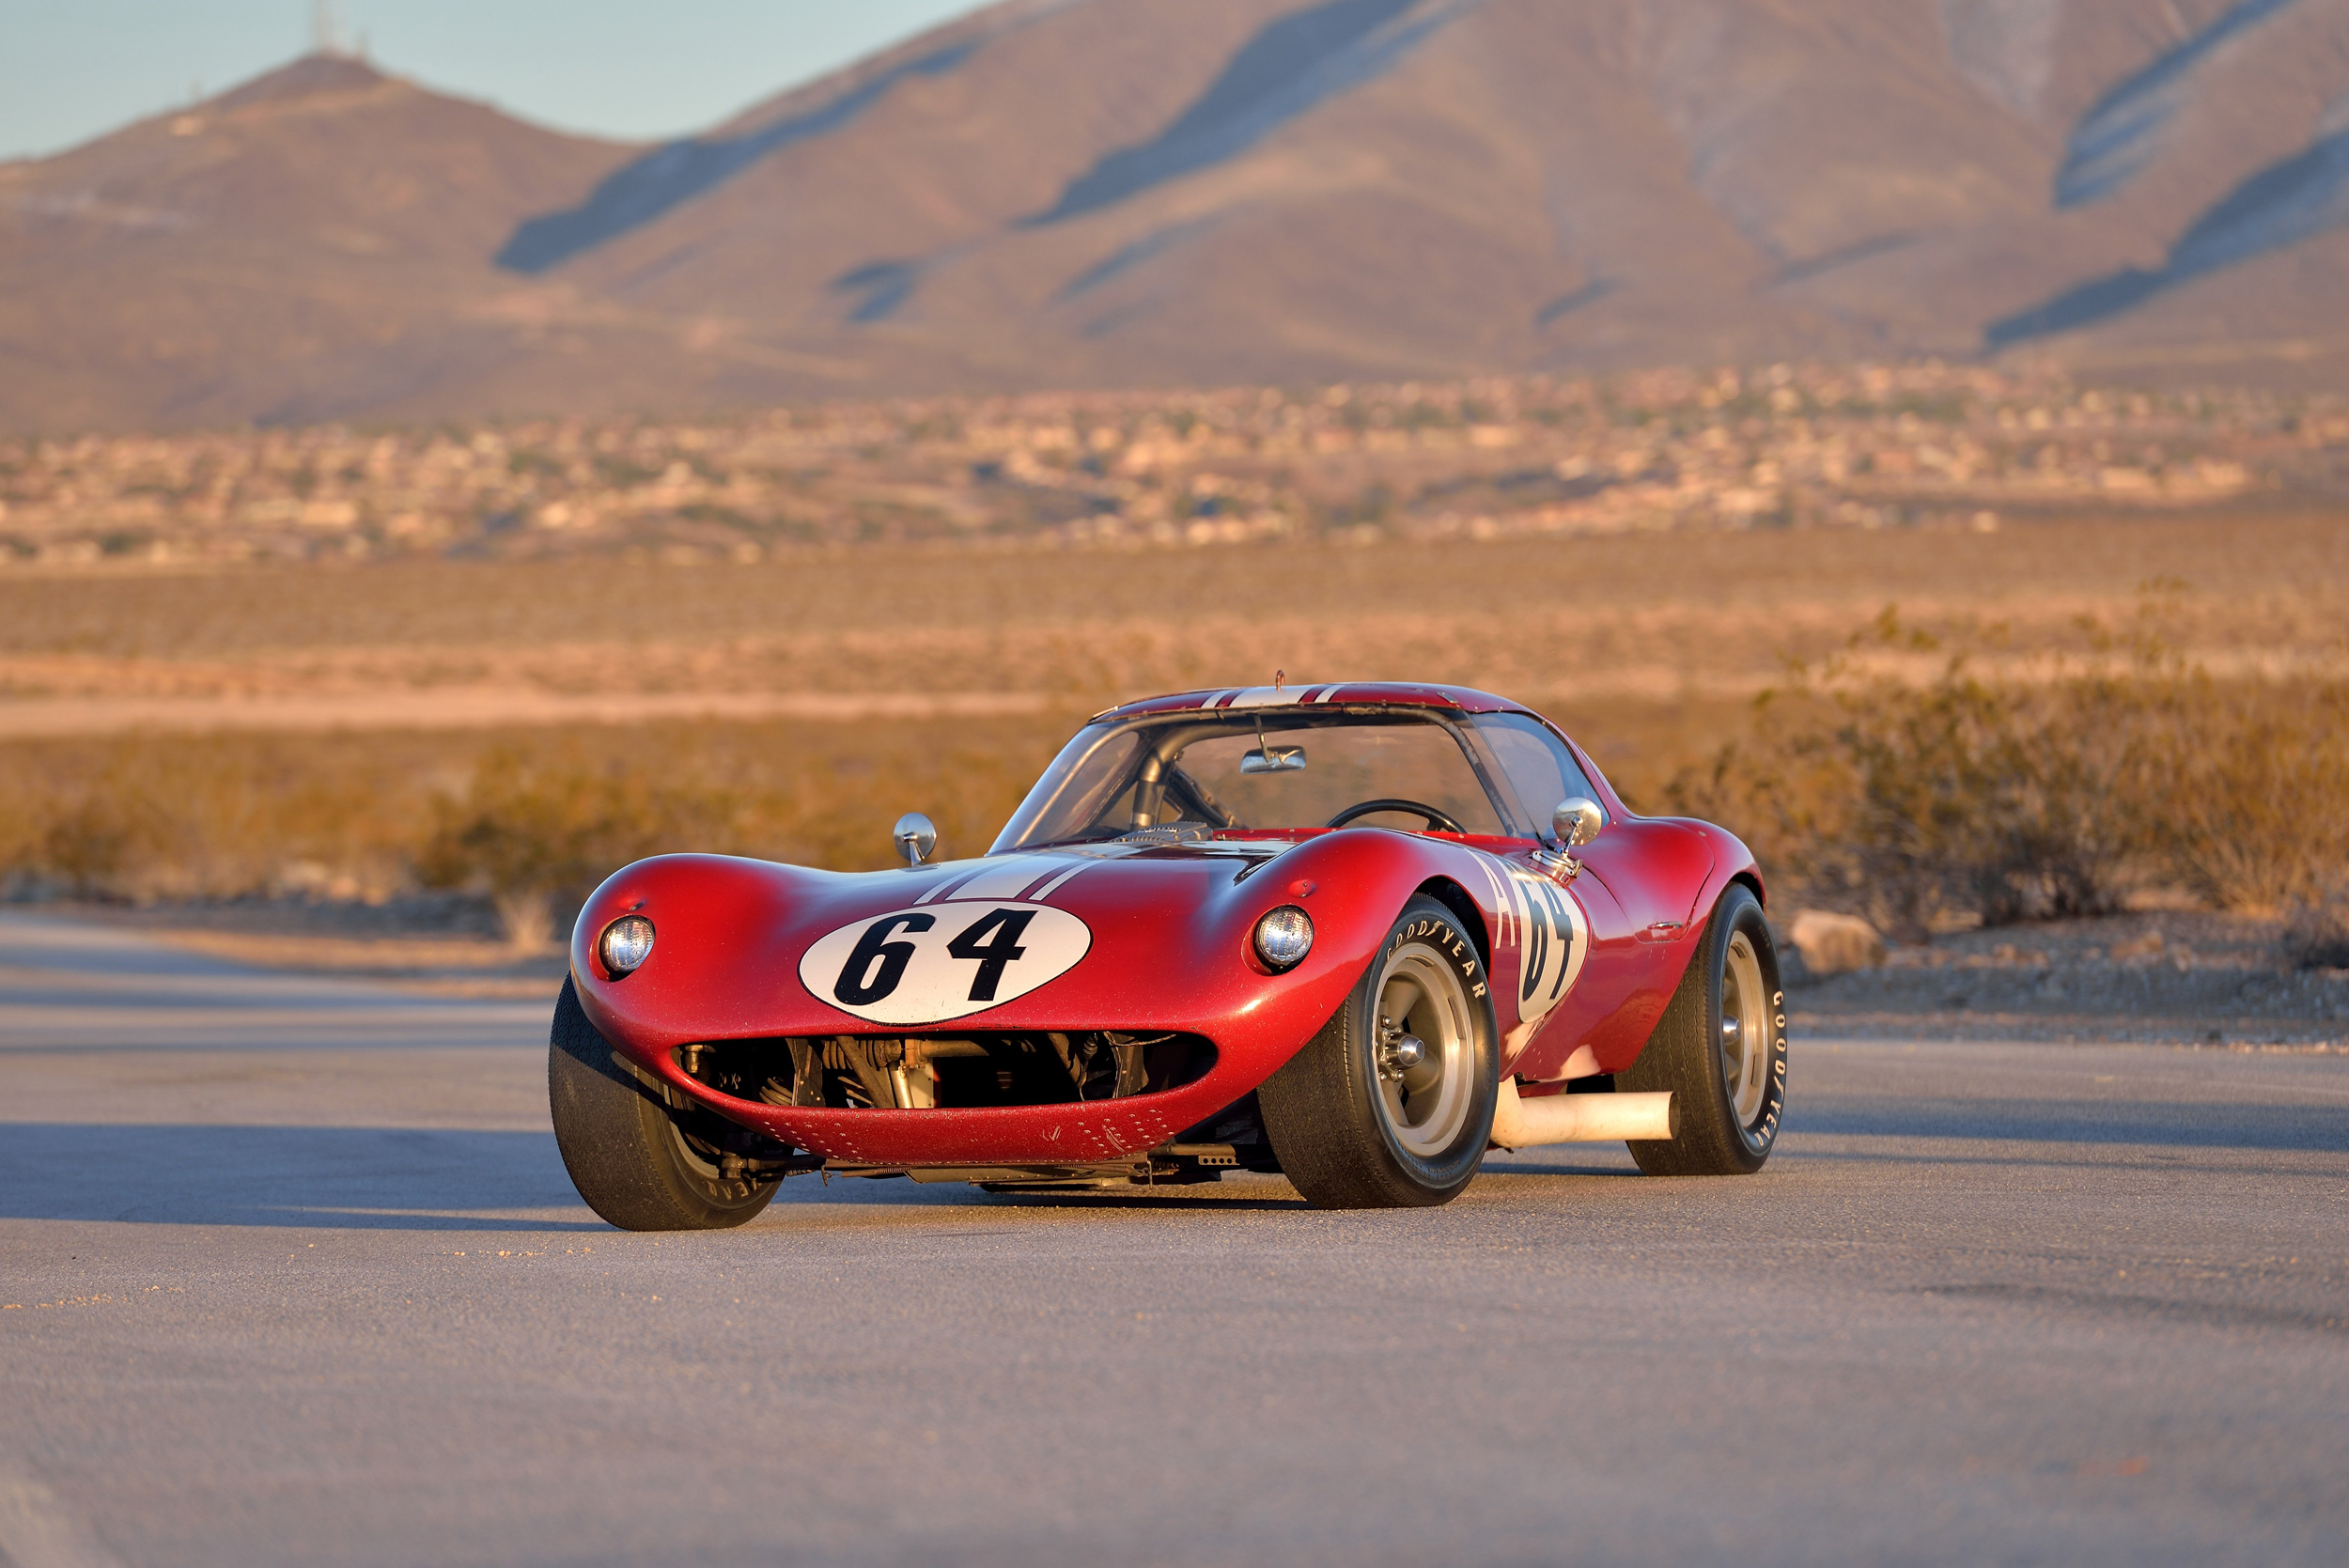 1963 Cheetah Race Car, Unrestored, No. 4 of 11 Built From the Steven Juliano Estate Collection